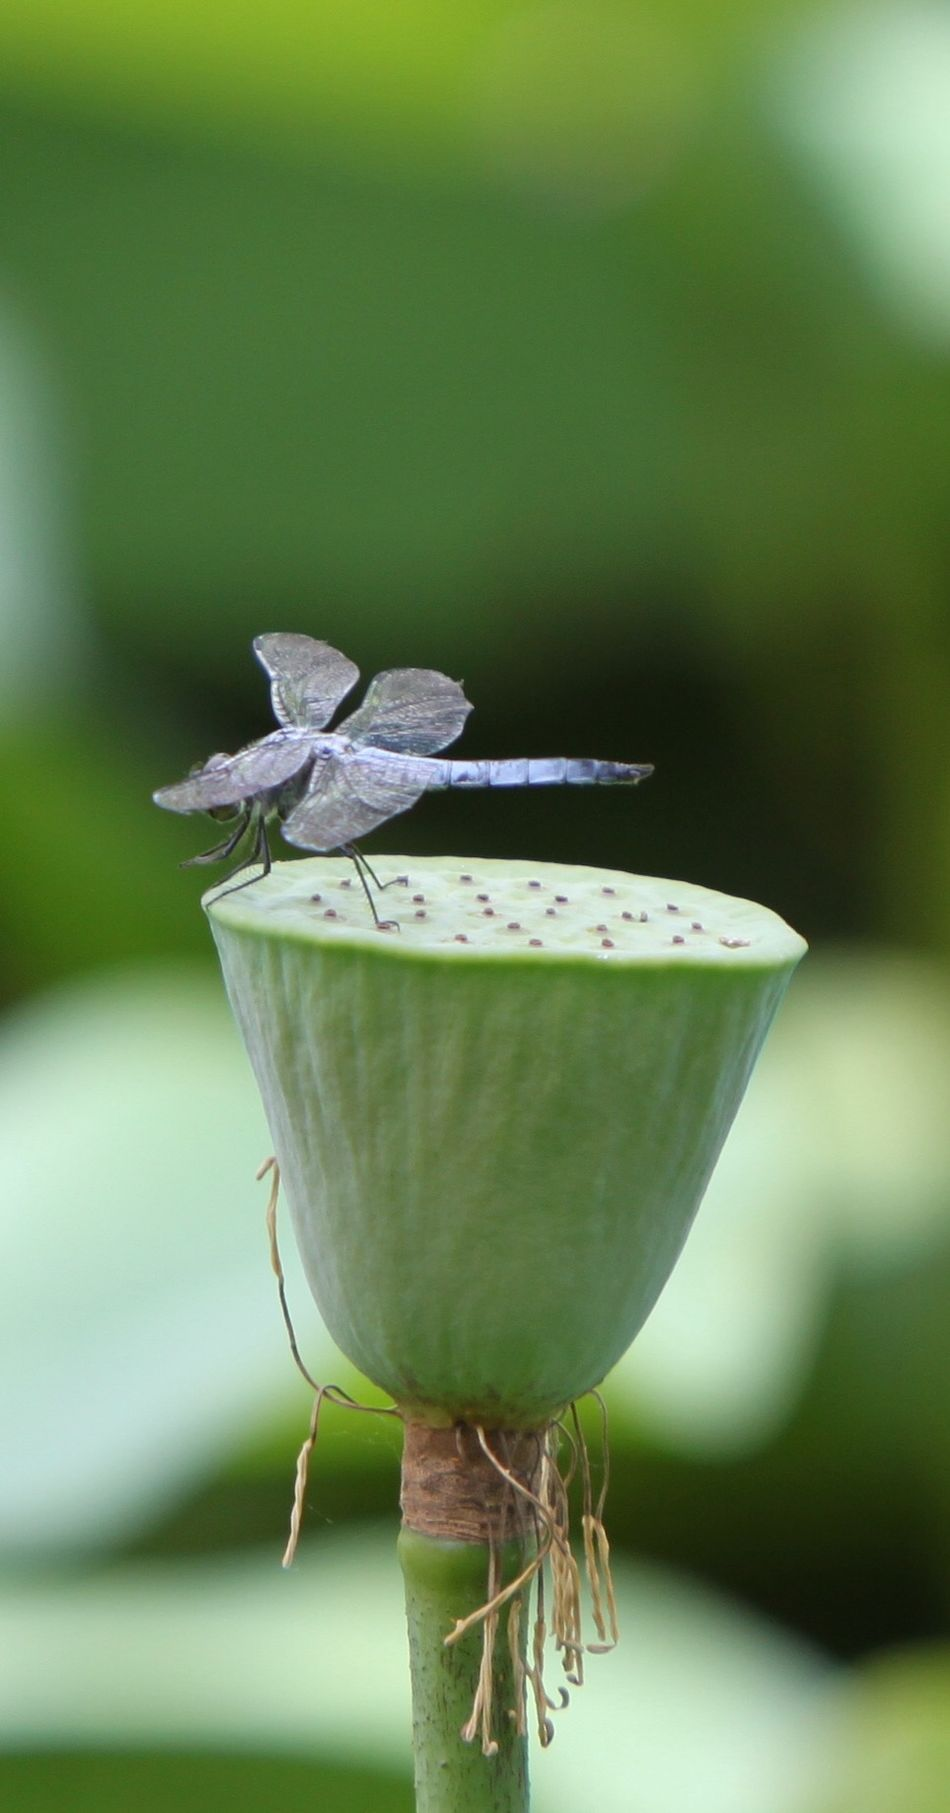 Old Summer Palace Historical Place Park Nature Plants Dragonfly Dragonfly On Plant Green